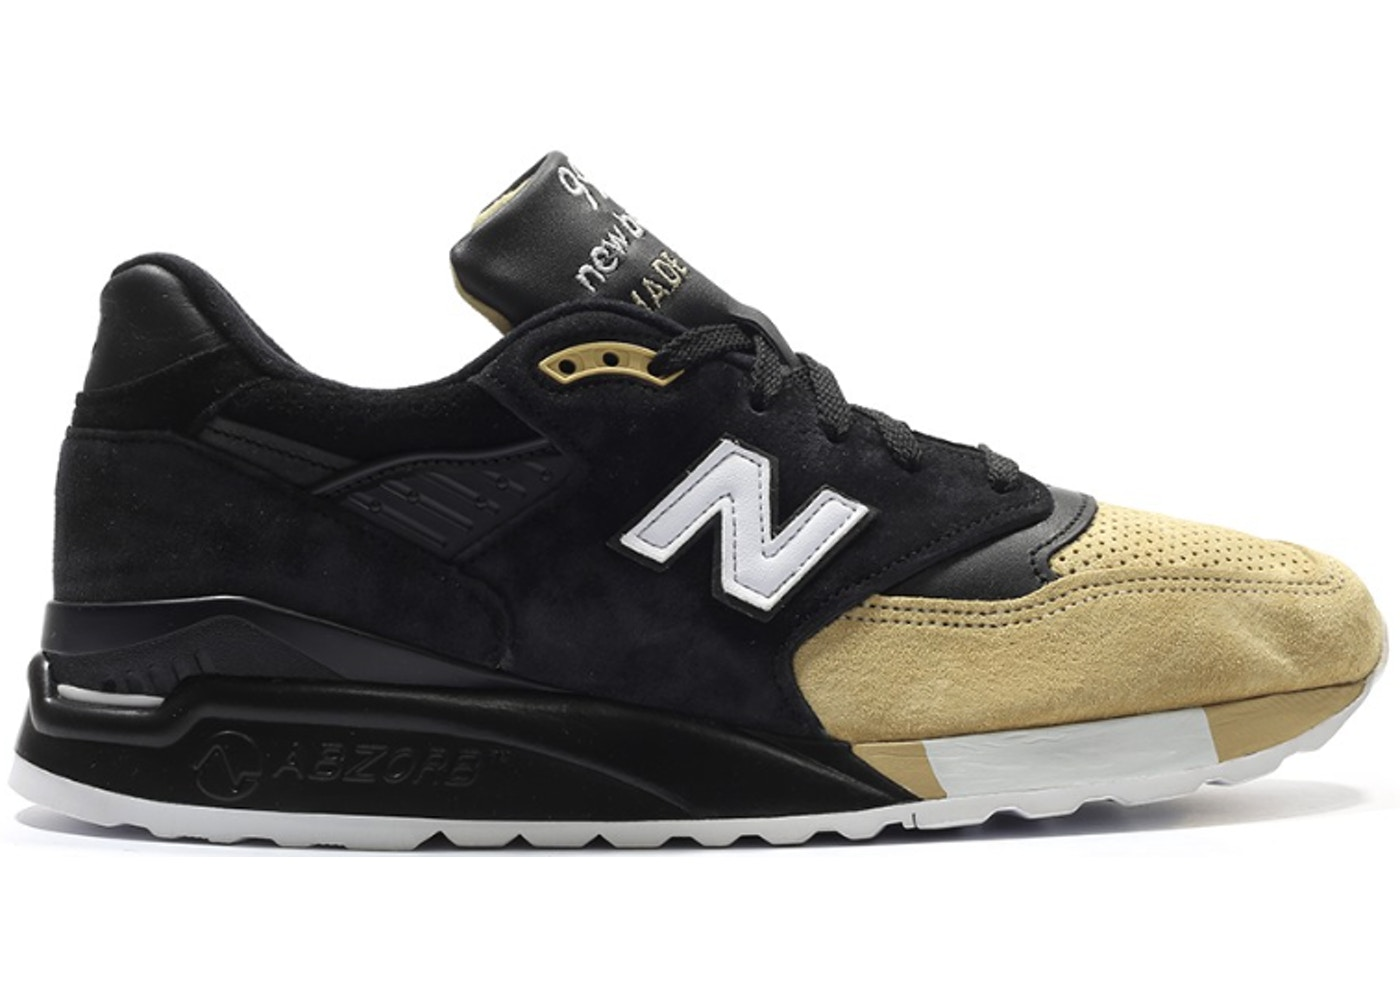 purchase cheap d725e ceeac New Balance 998 Premier PRMR